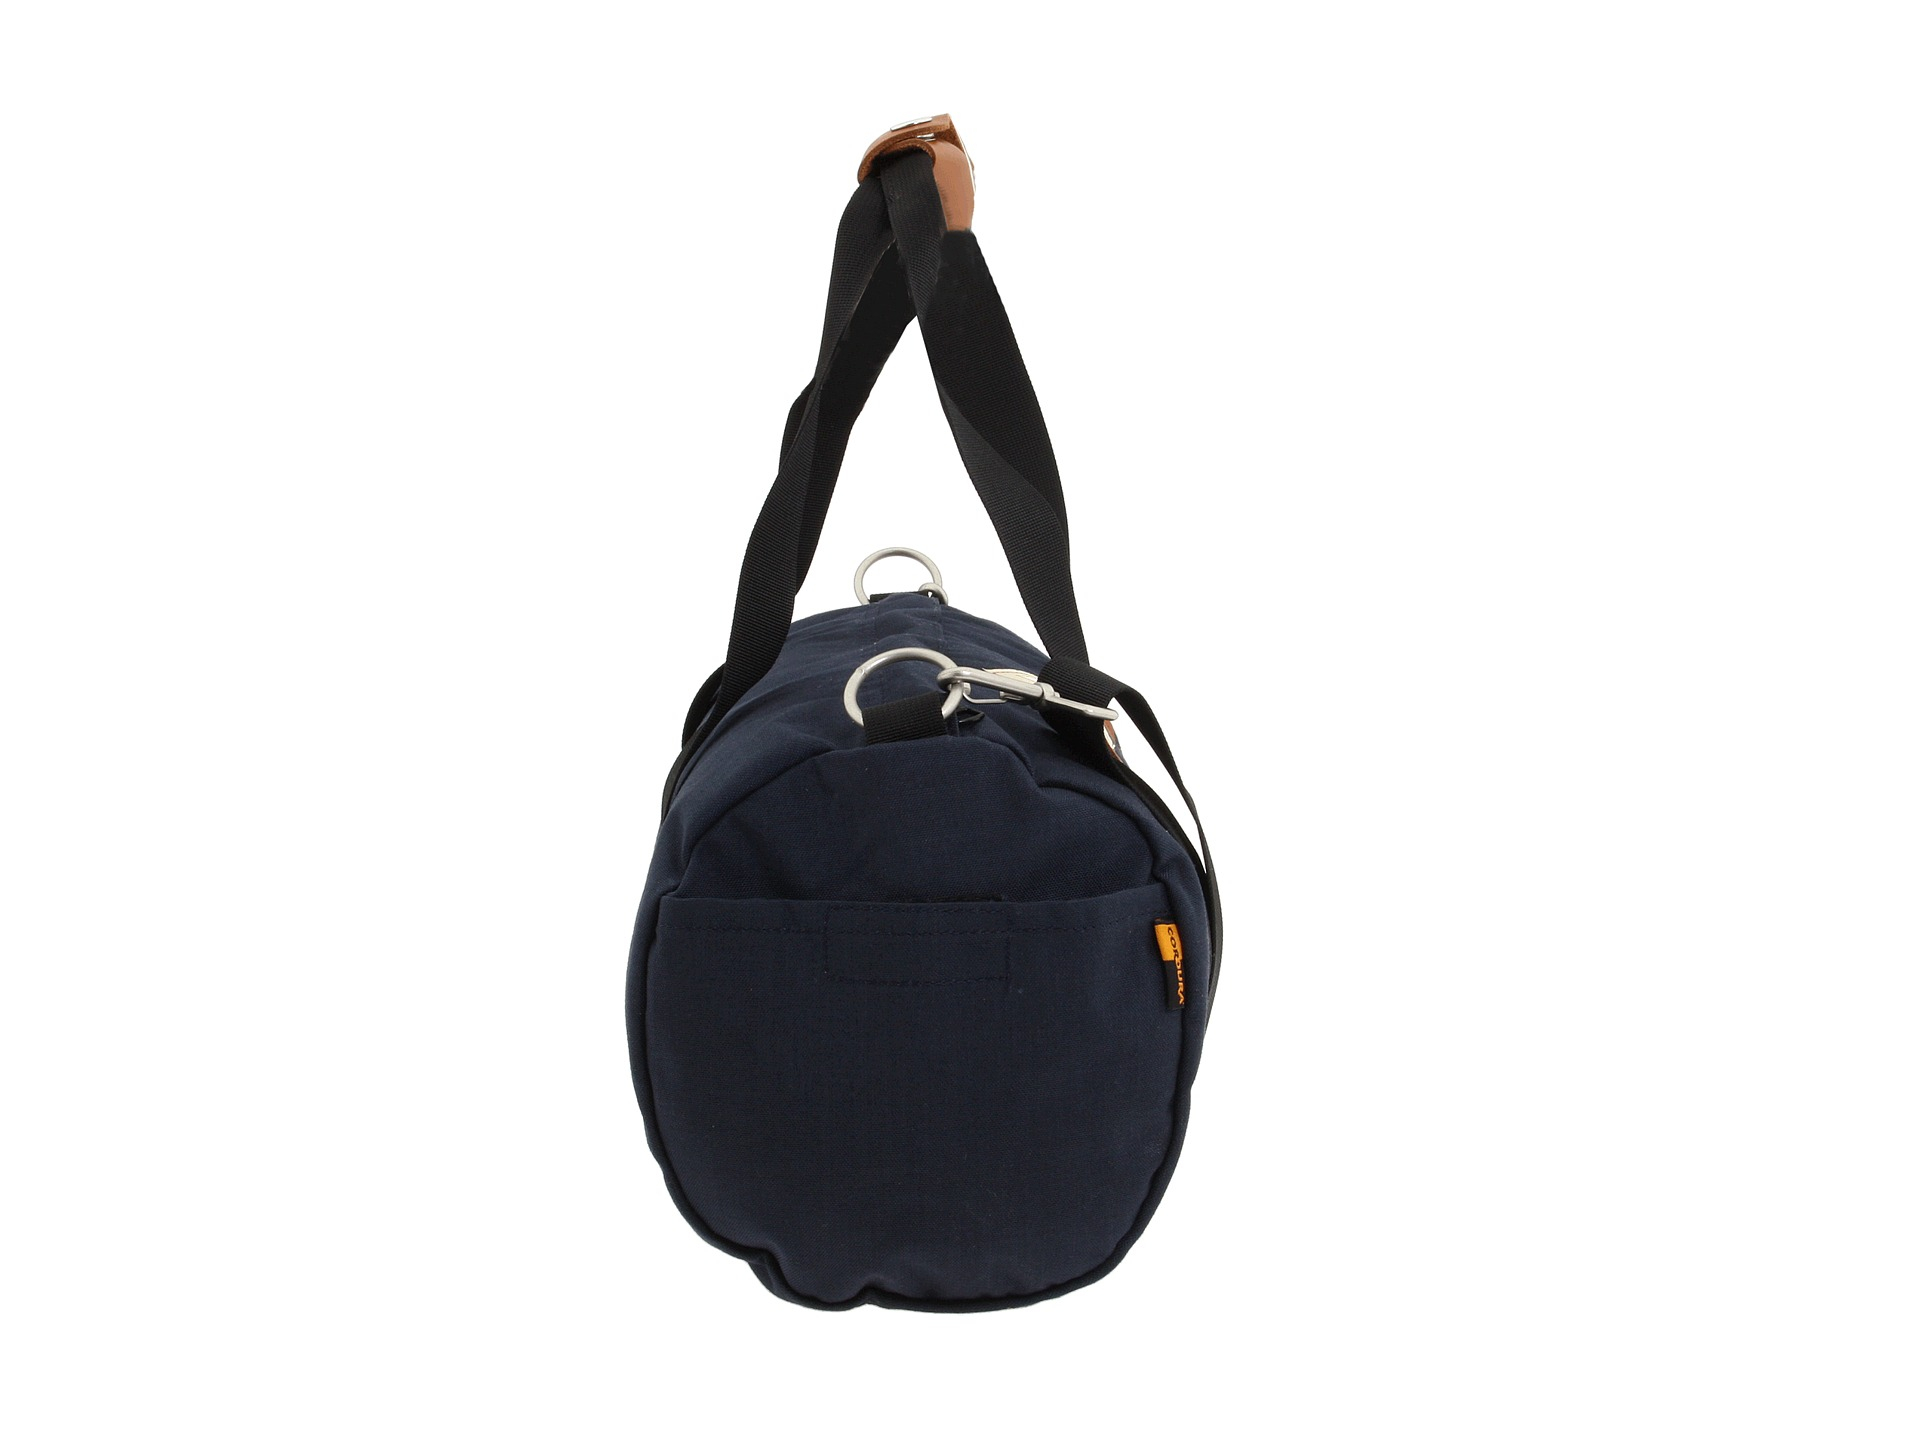 Amazon.com: Customer reviews: Kelty Tote Diaper Bag, Blue